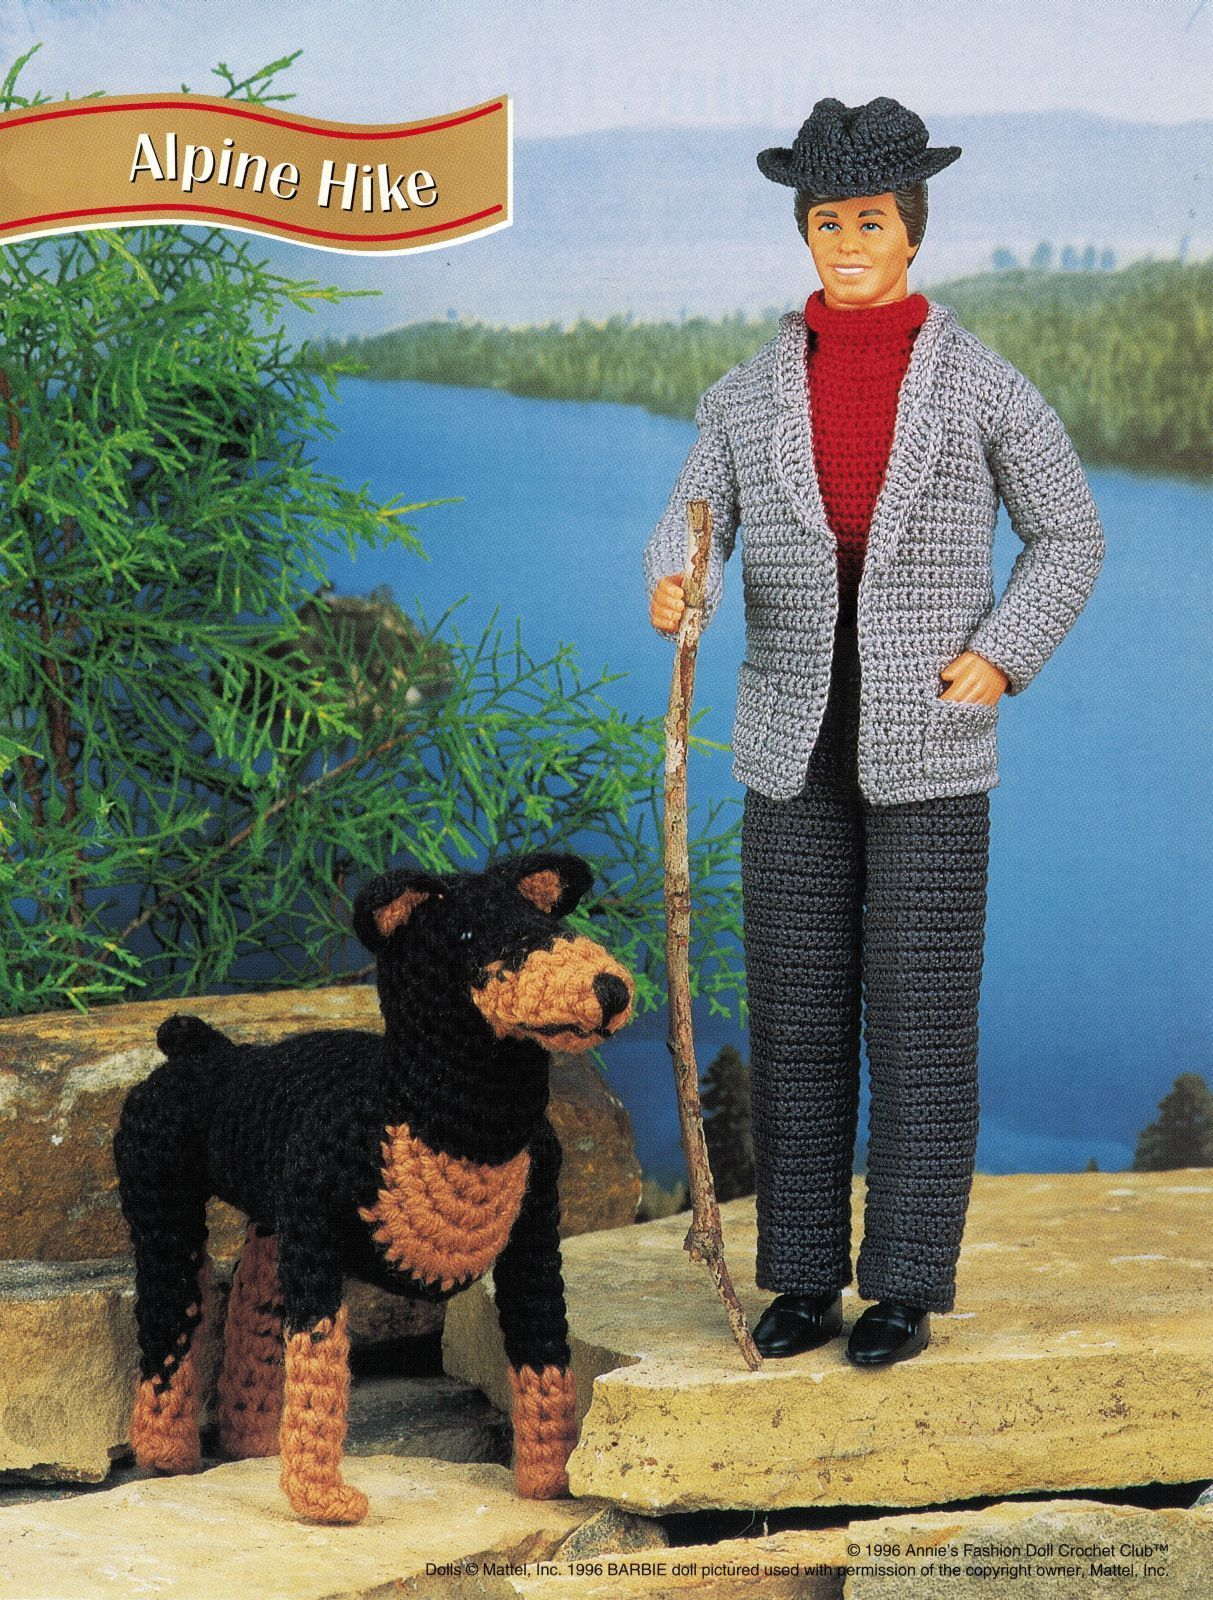 "Primary image for 4X 12"" Ken Barbie Doll Pumping Iron London& Alpine Hike Crochet PATTERN"